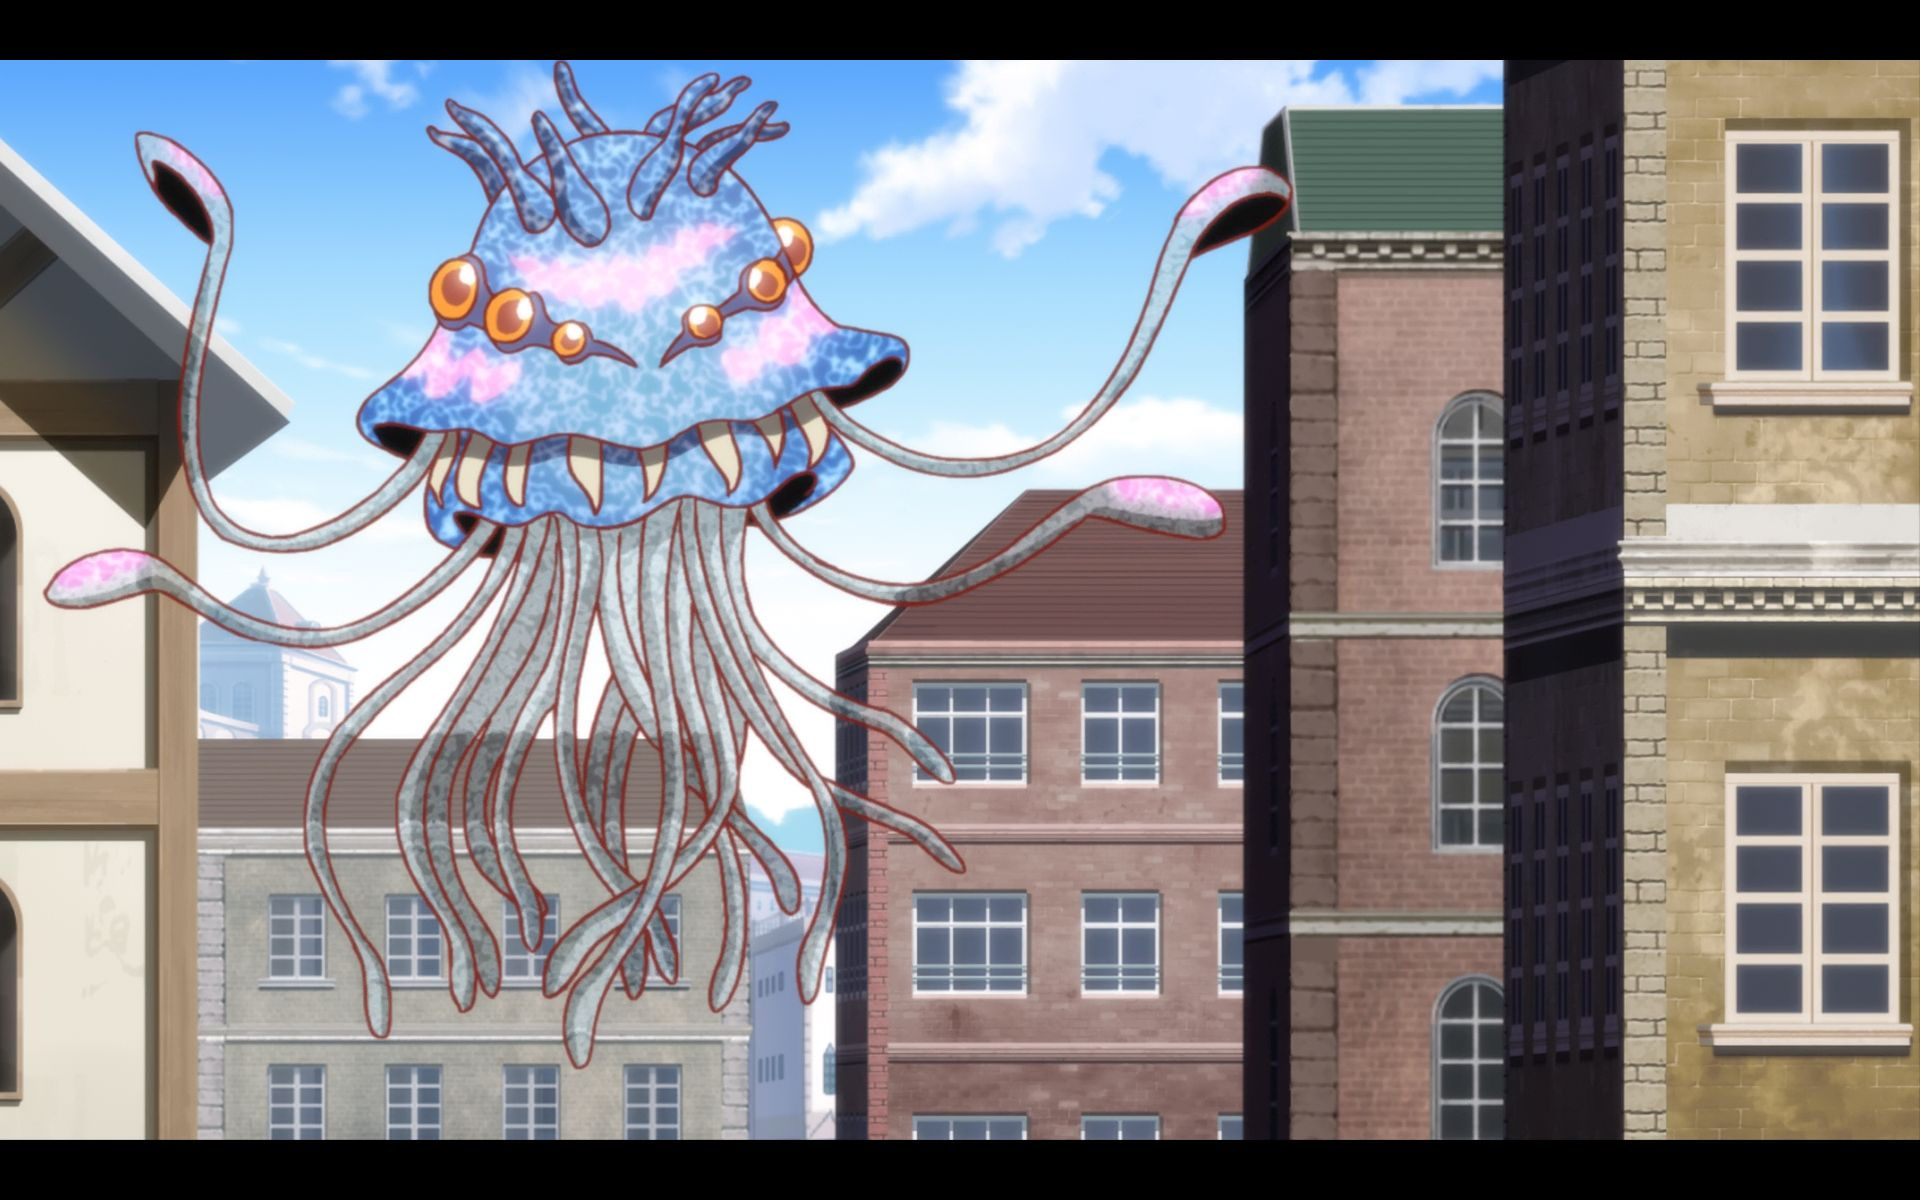 The 'final' boss of this anime.